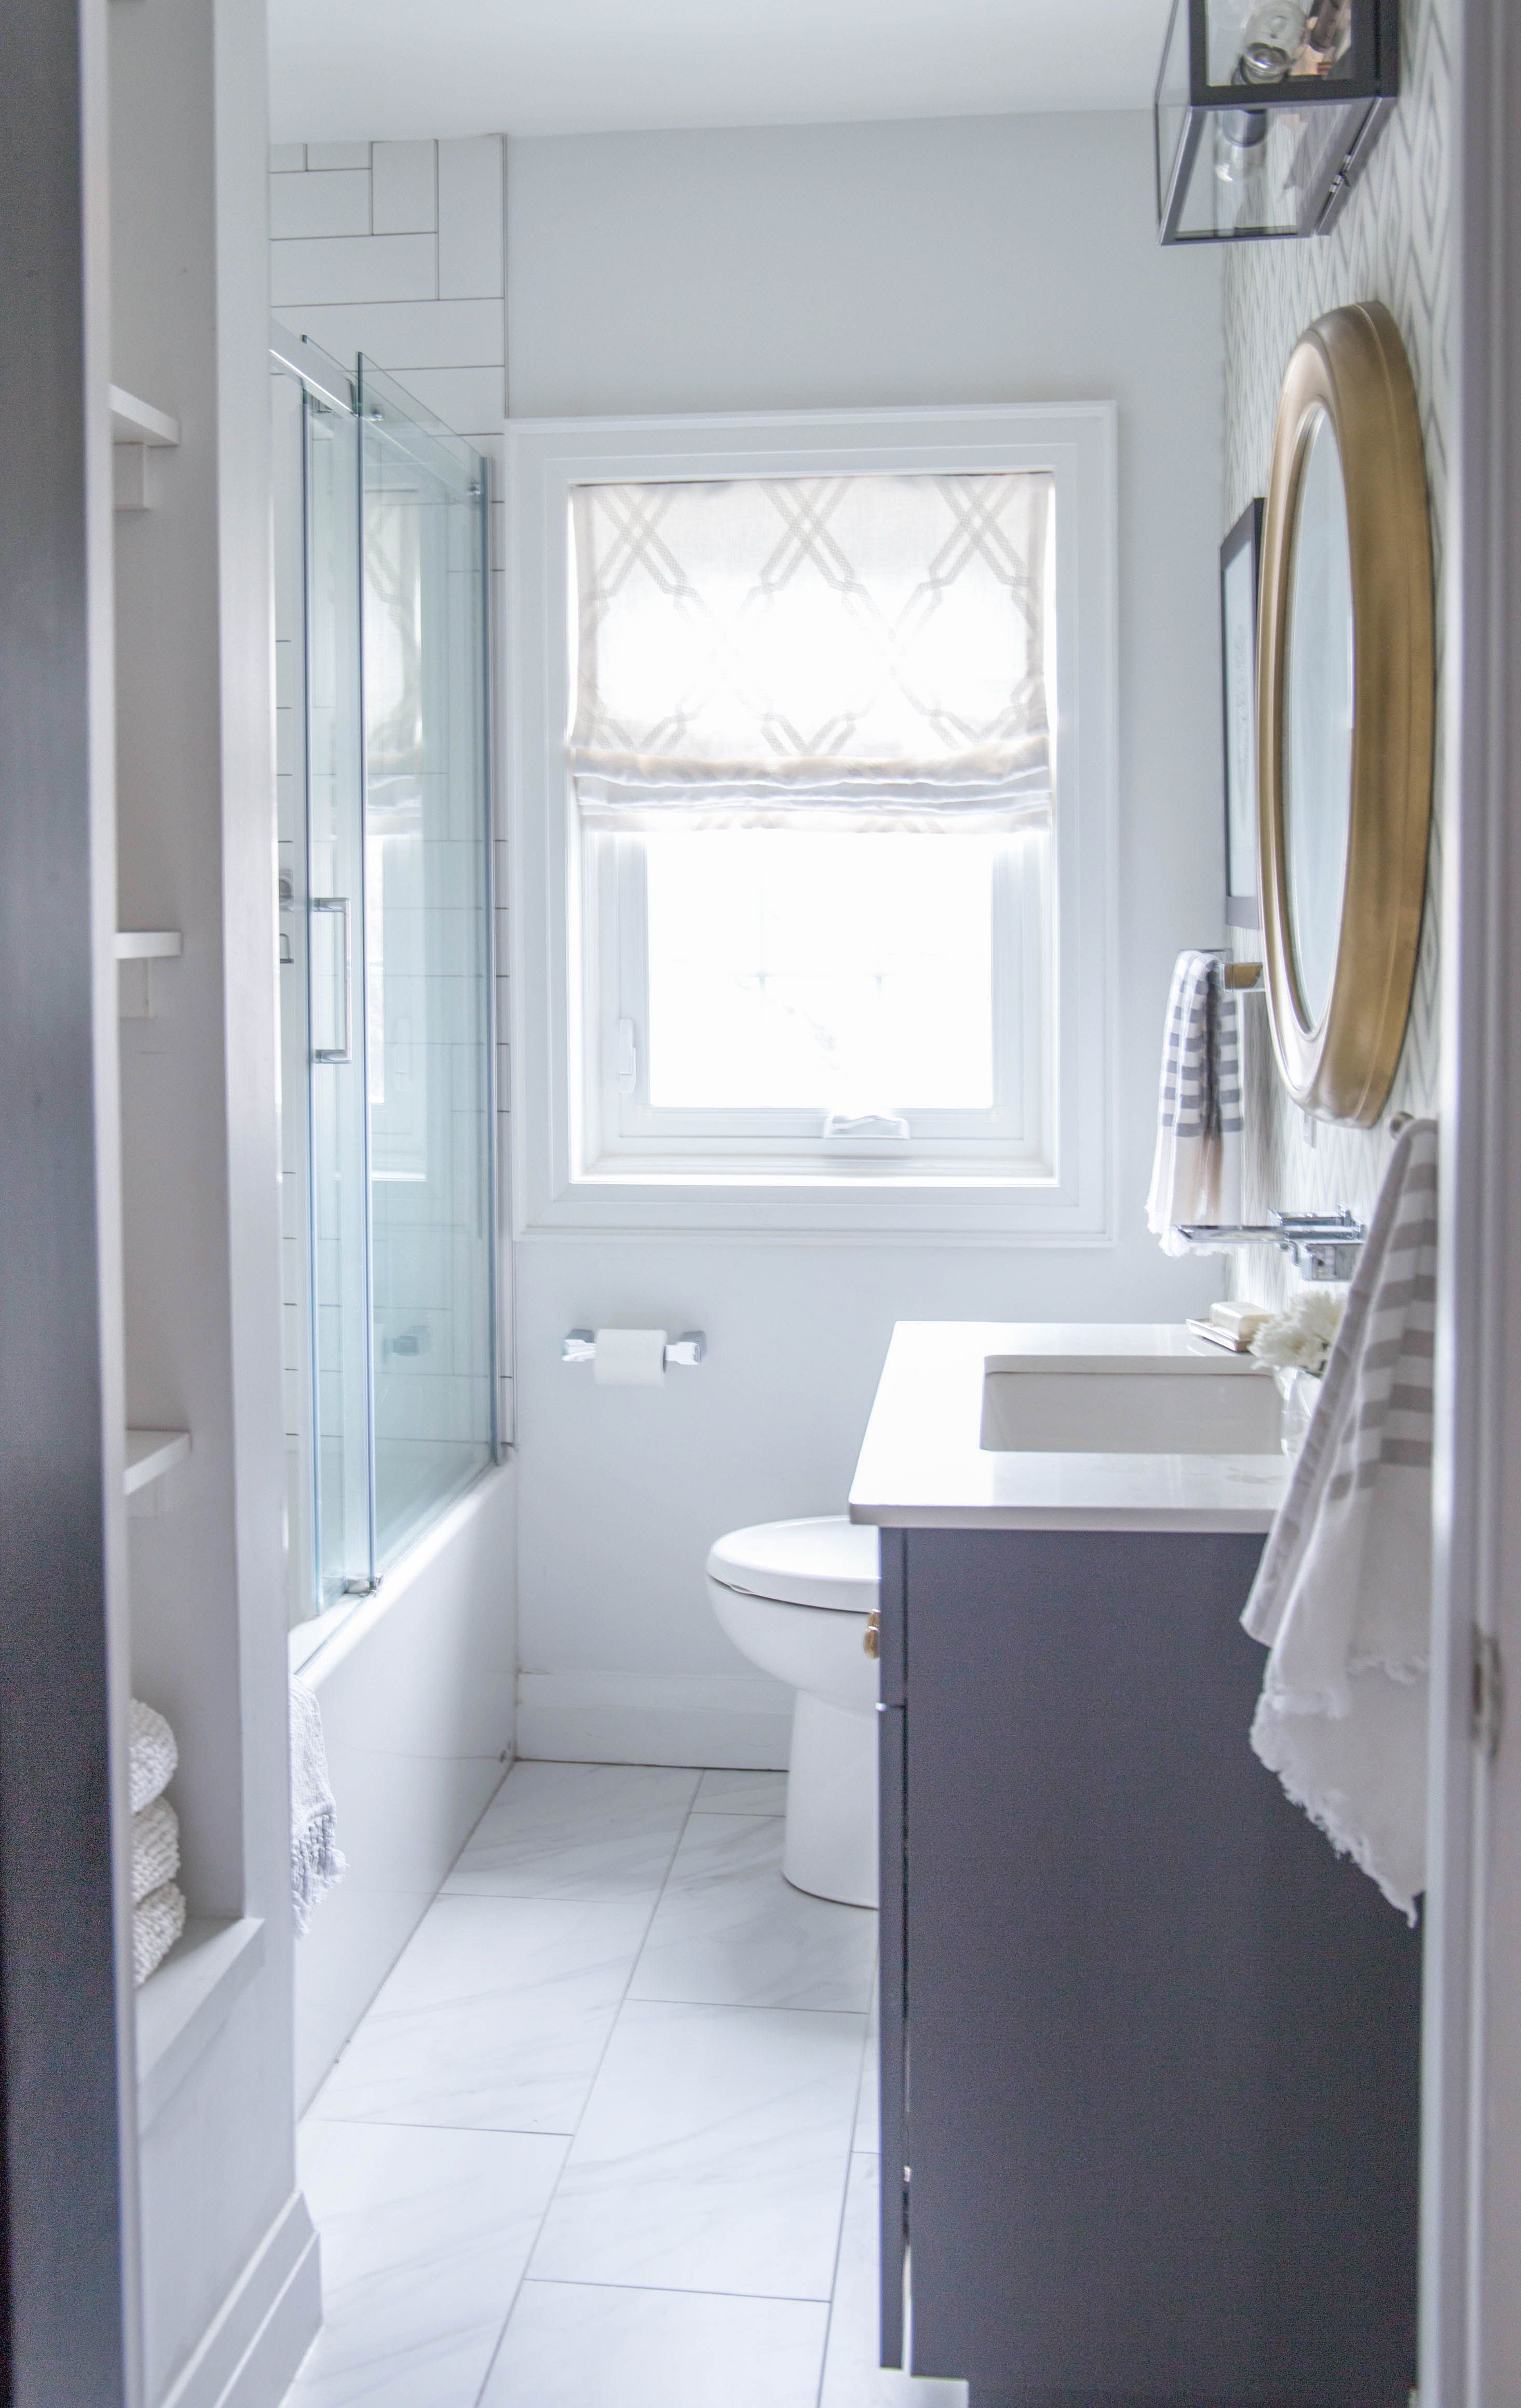 Property Brothers Bathroom Reveal by Karin Bennett Designs ...